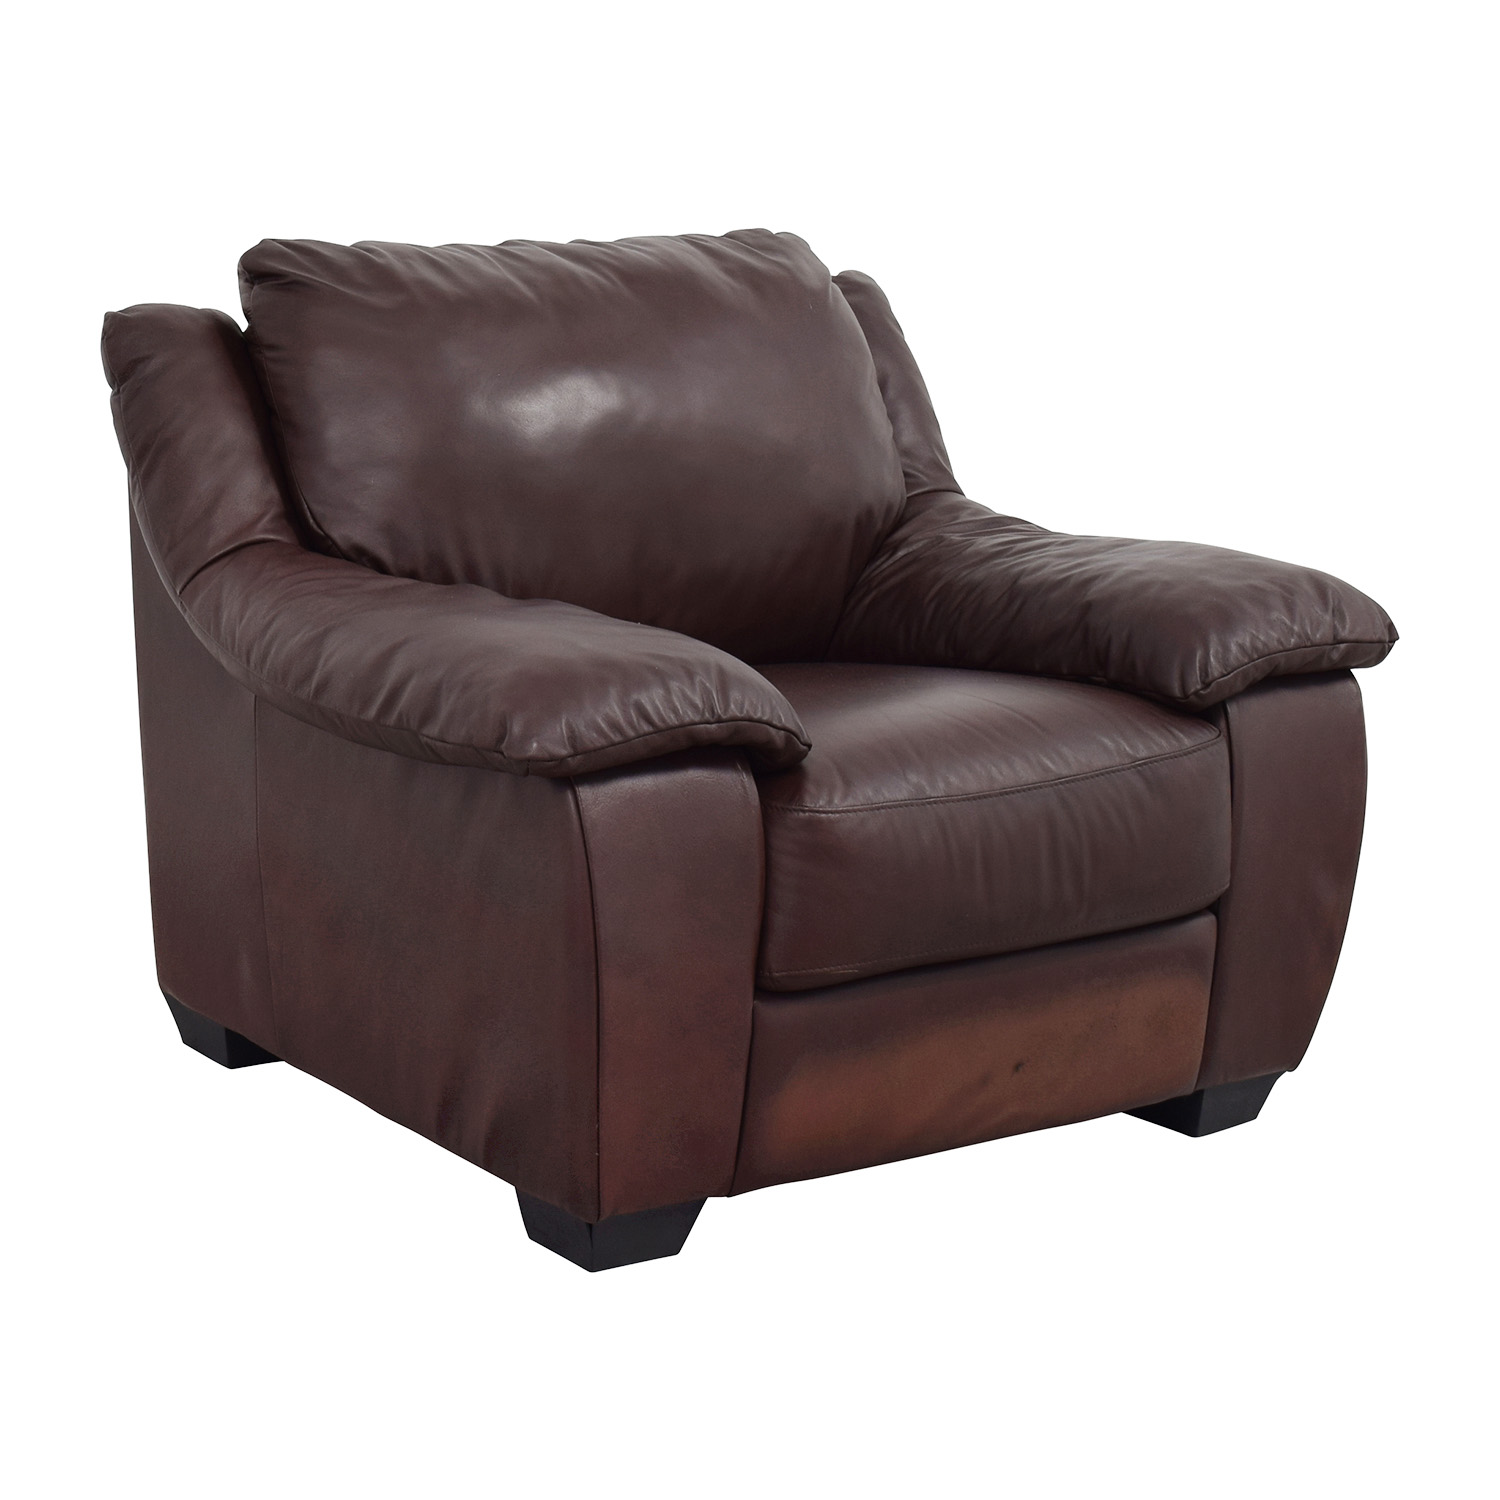 Italsofa Italsofa Brown Leather Plush Armchair used